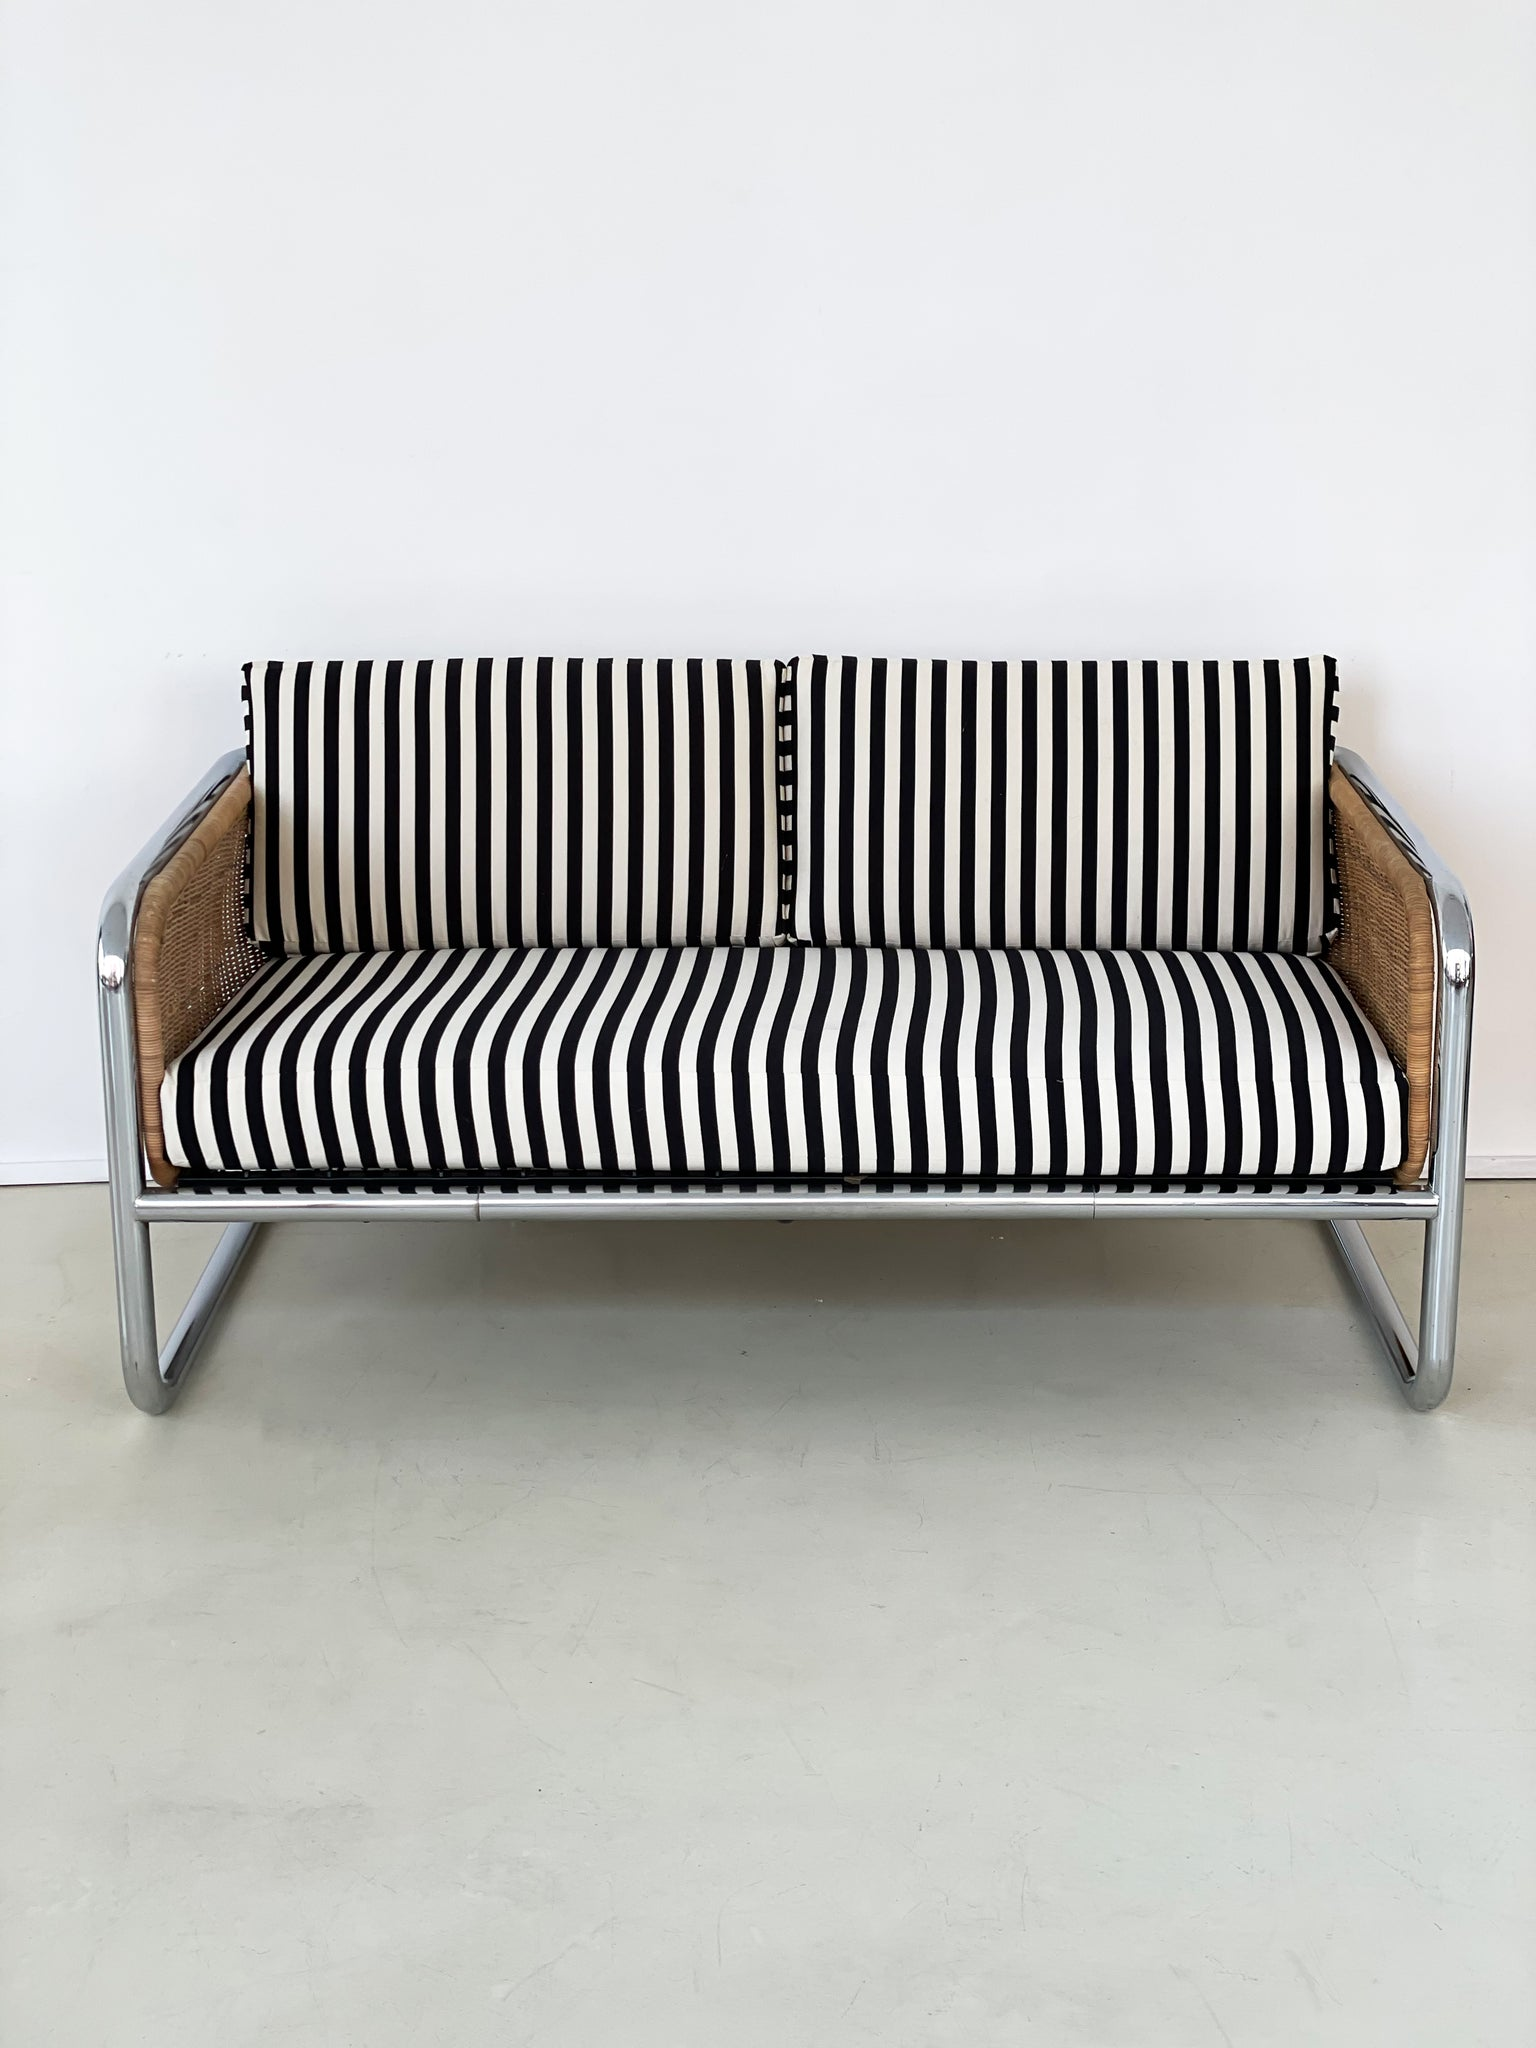 1970s Martin Visser Wicker and Chrome Cantilever Couch